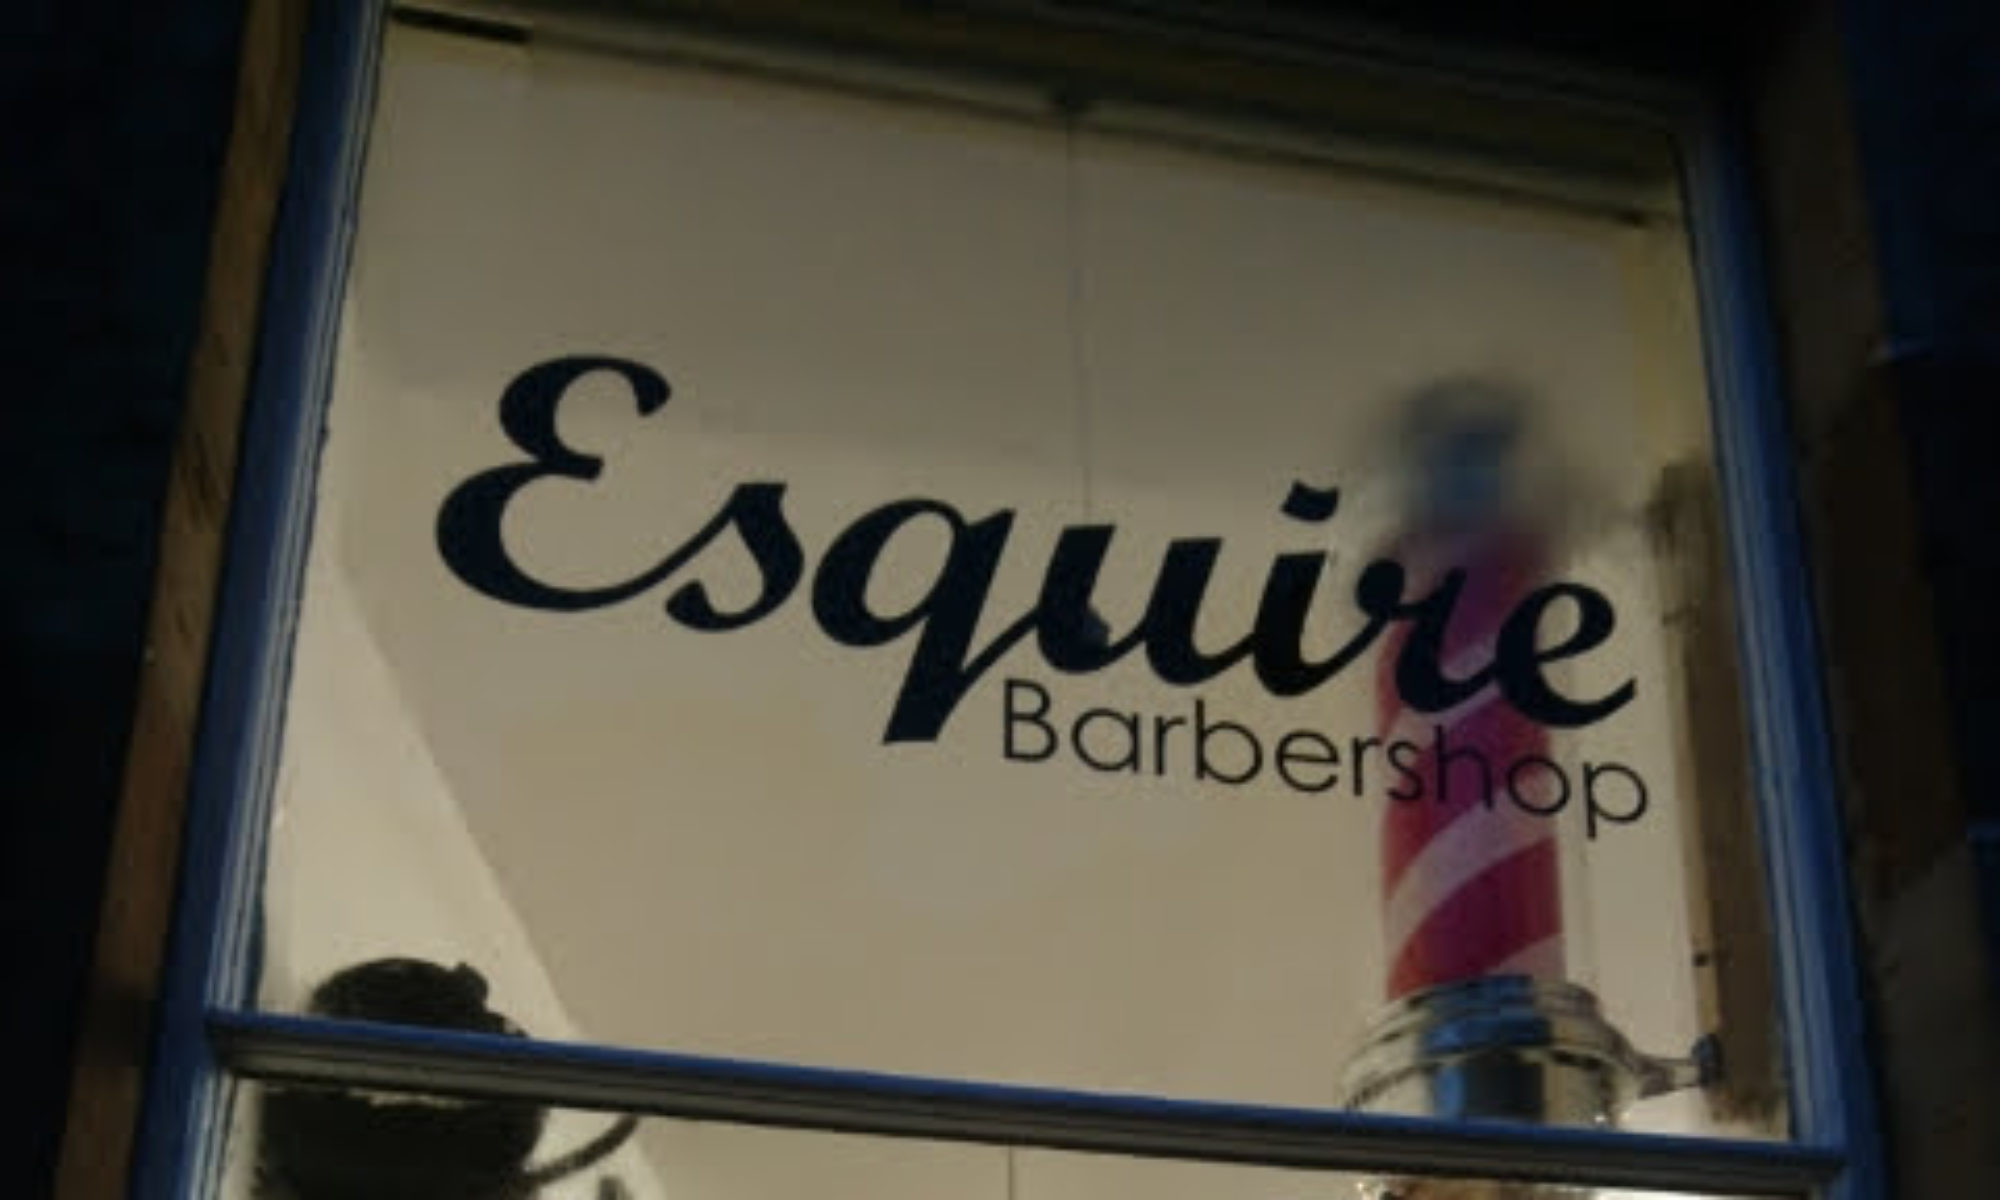 Esquire Barbershop